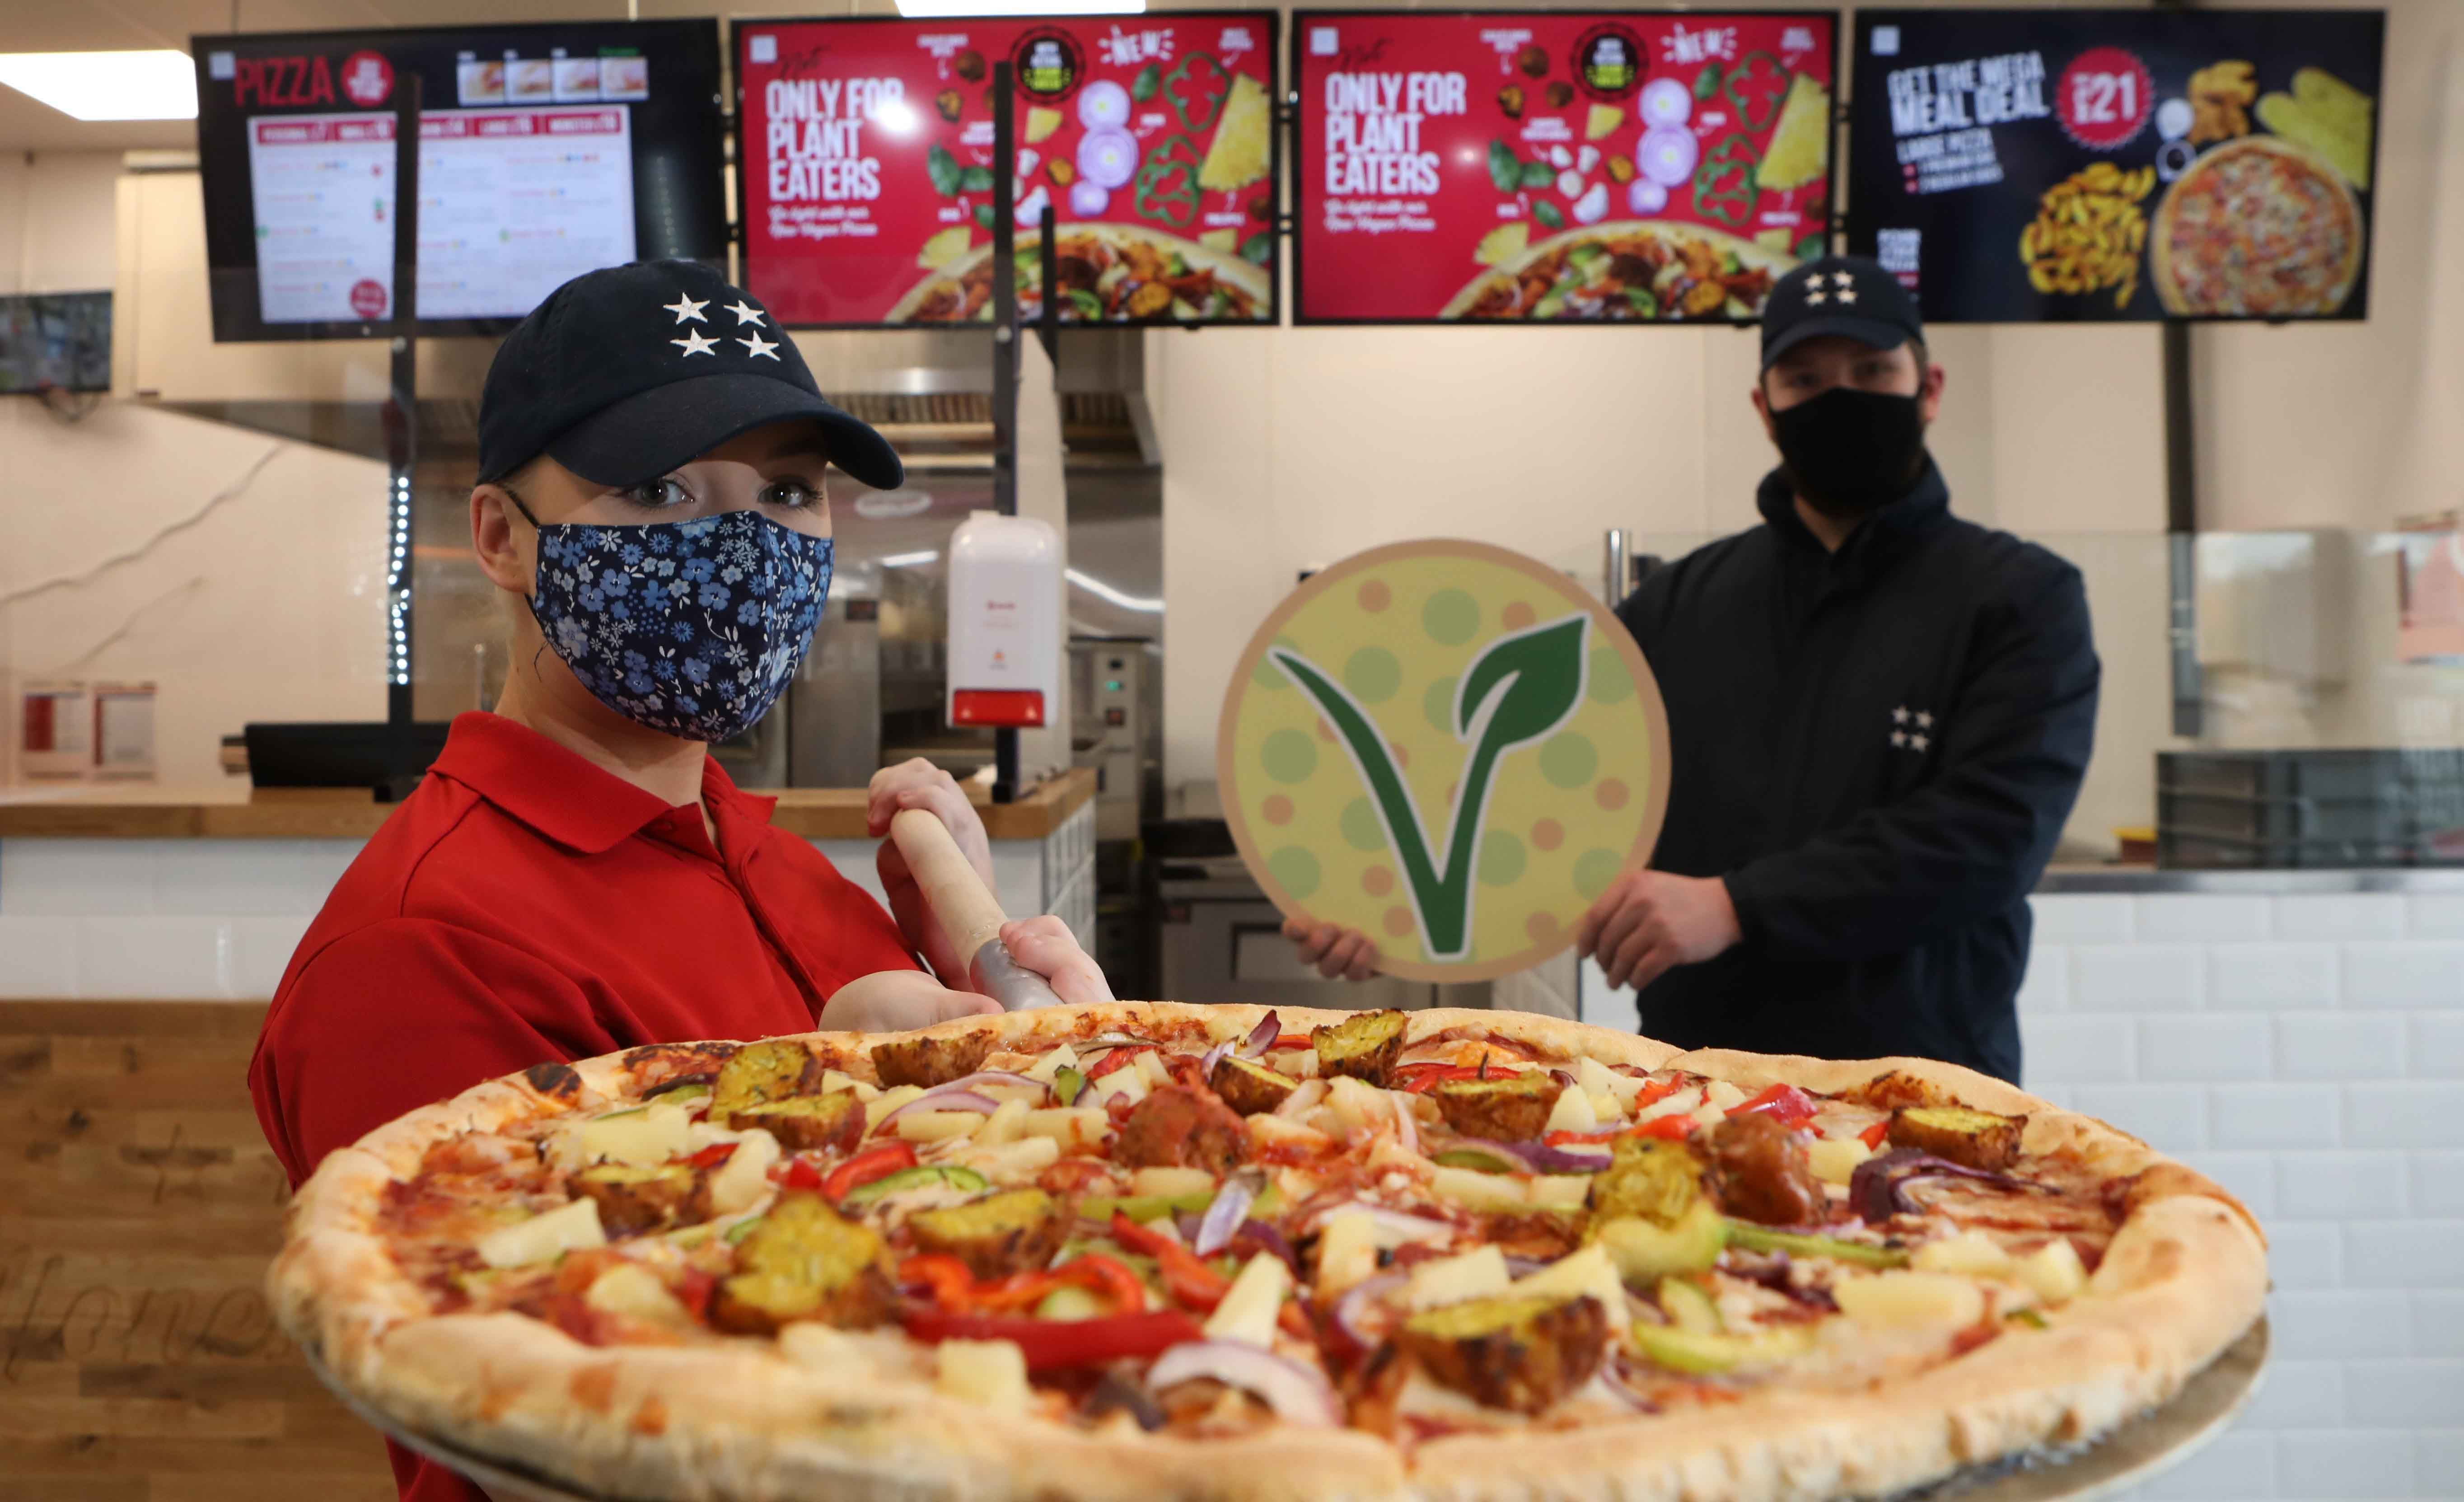 Four Star Pizza launches VEGAN PIZZA